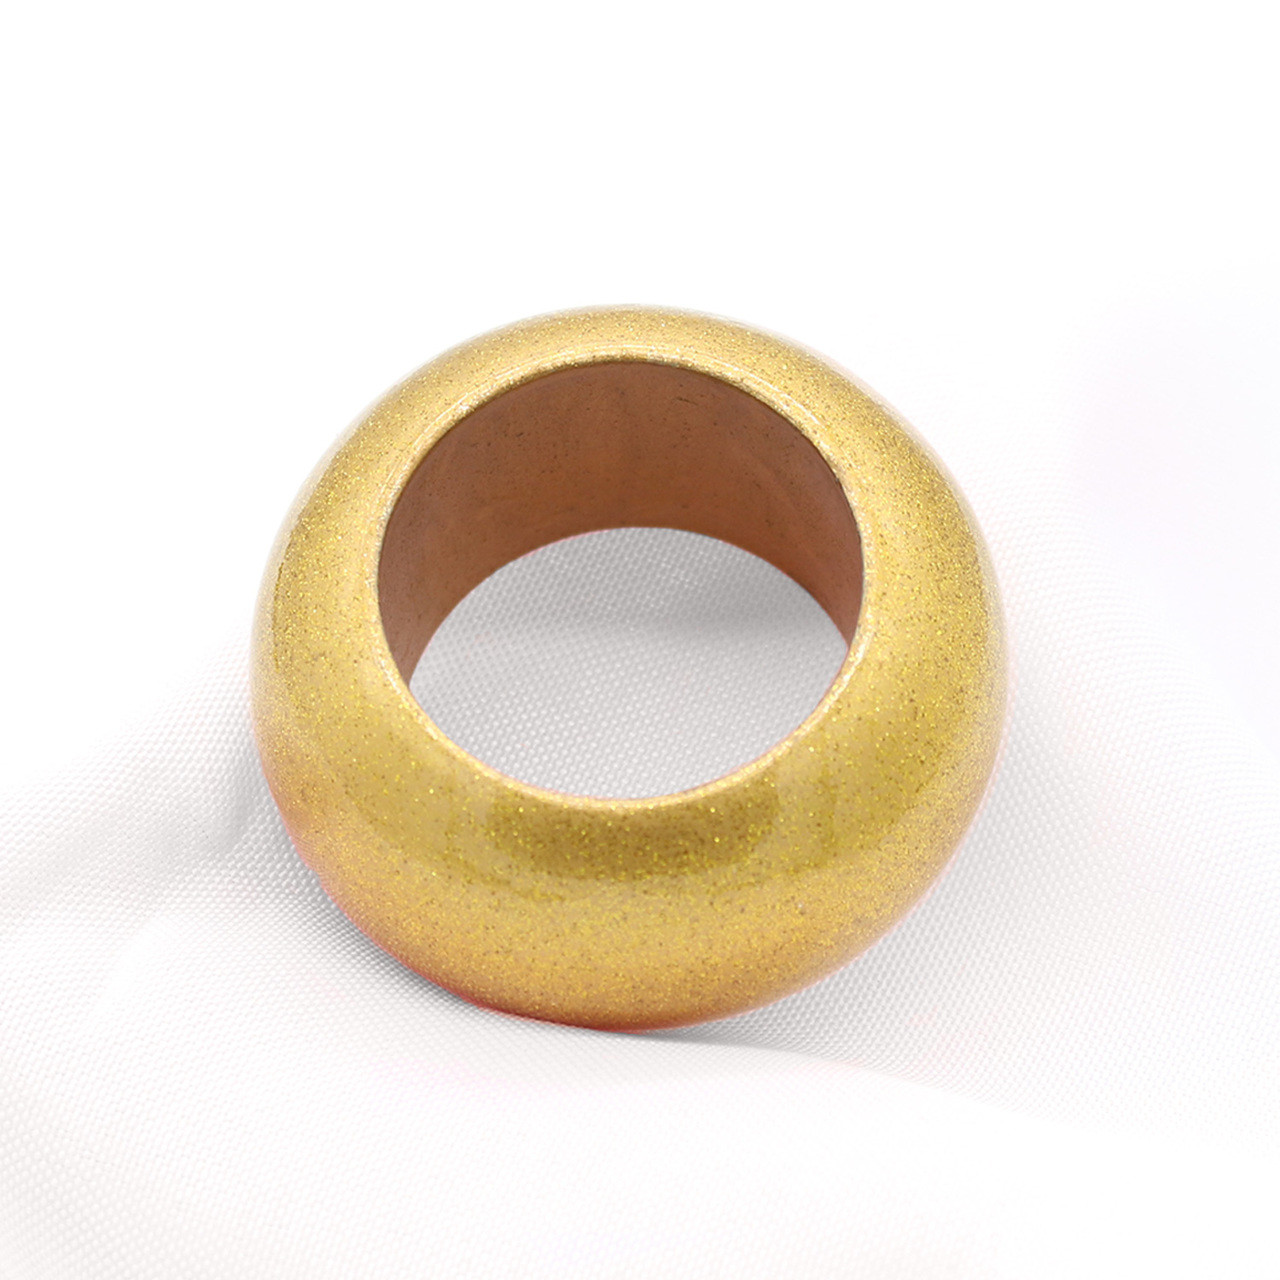 Acrylic Glittering Napkin Rings Gold Your Chair Covers Inc